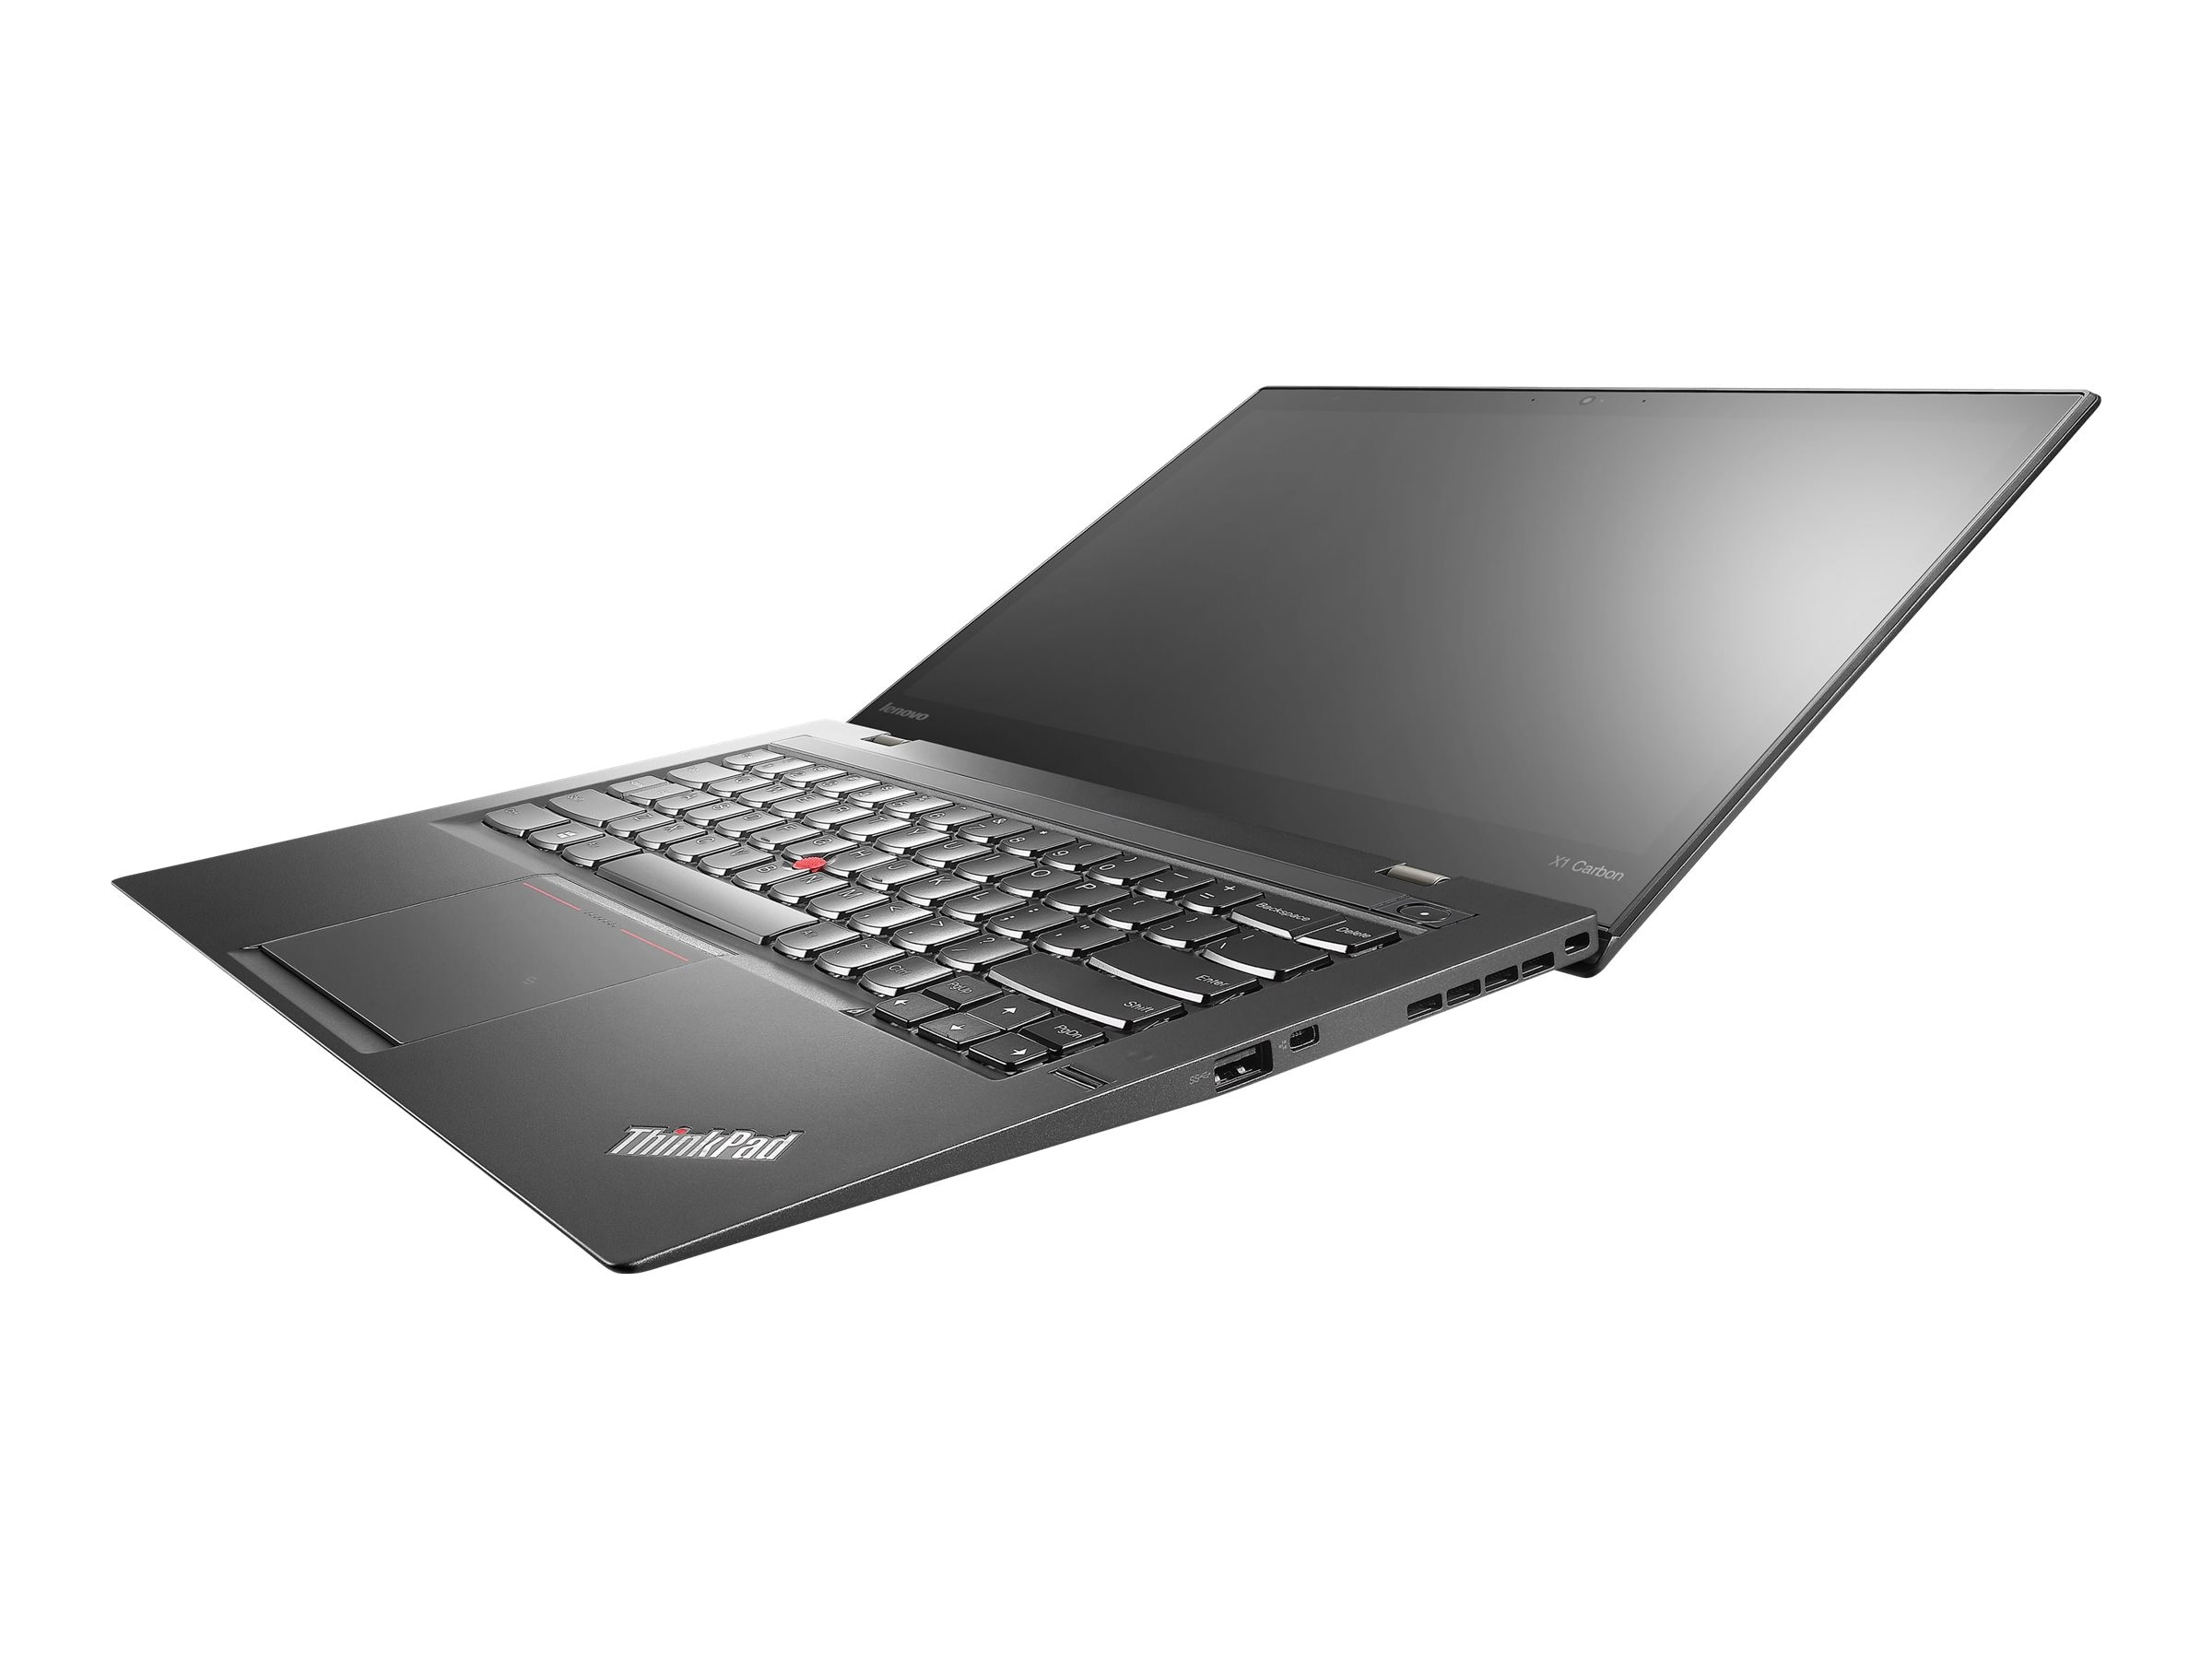 Lenovo ThinkPad X1 Carbon G2 : 2.1GHz Core i7 14in display, 20A80086US